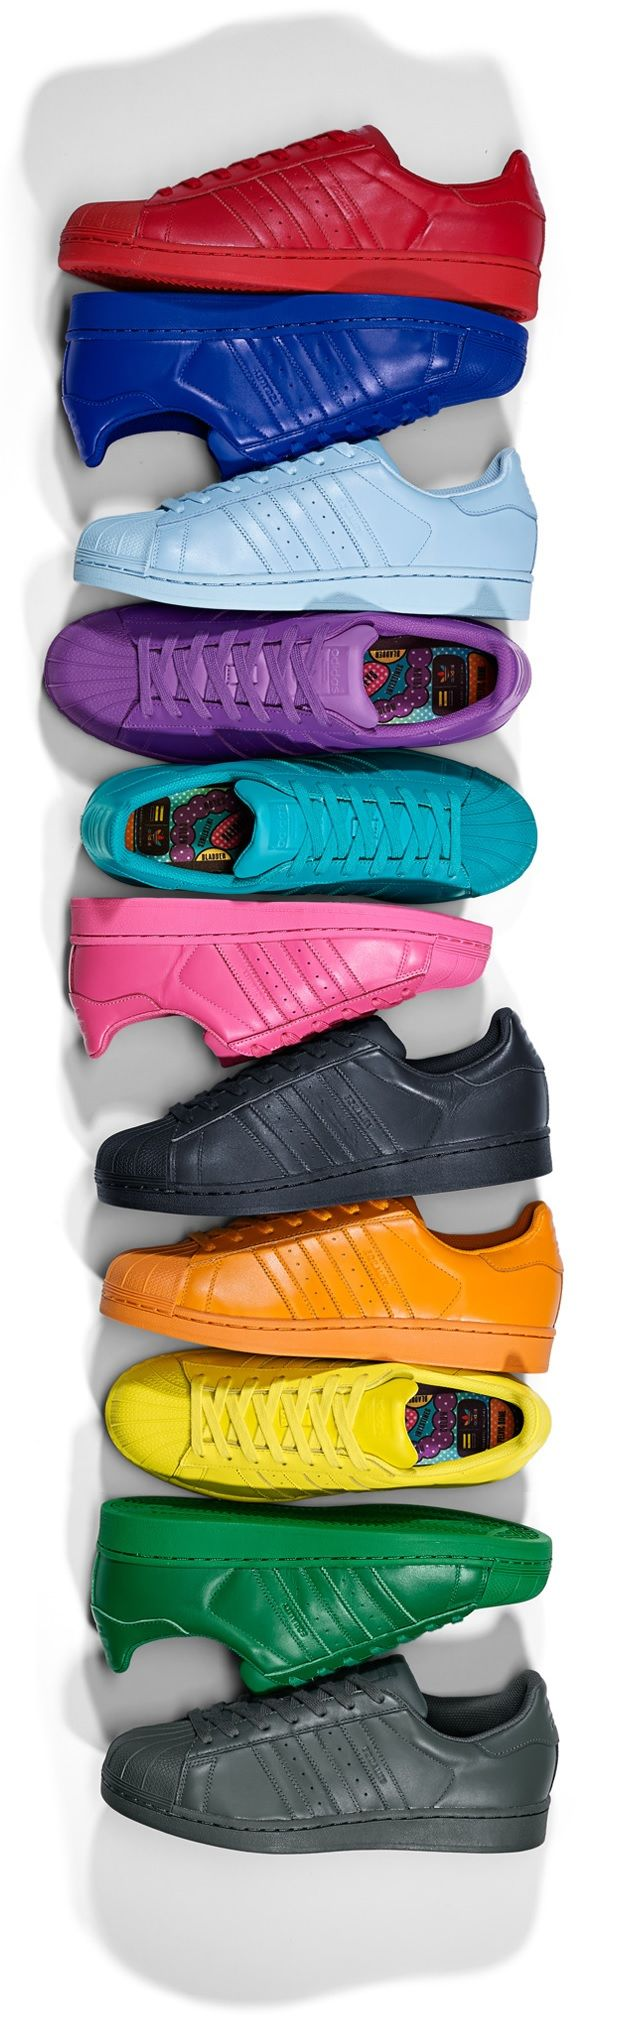 "Footpatrol (2015) ""Pharell Williams x adidas Originals Superstar 'Supercolor Pack'"" Recuperado de: http://www.footpatrol.co.uk/sale/"